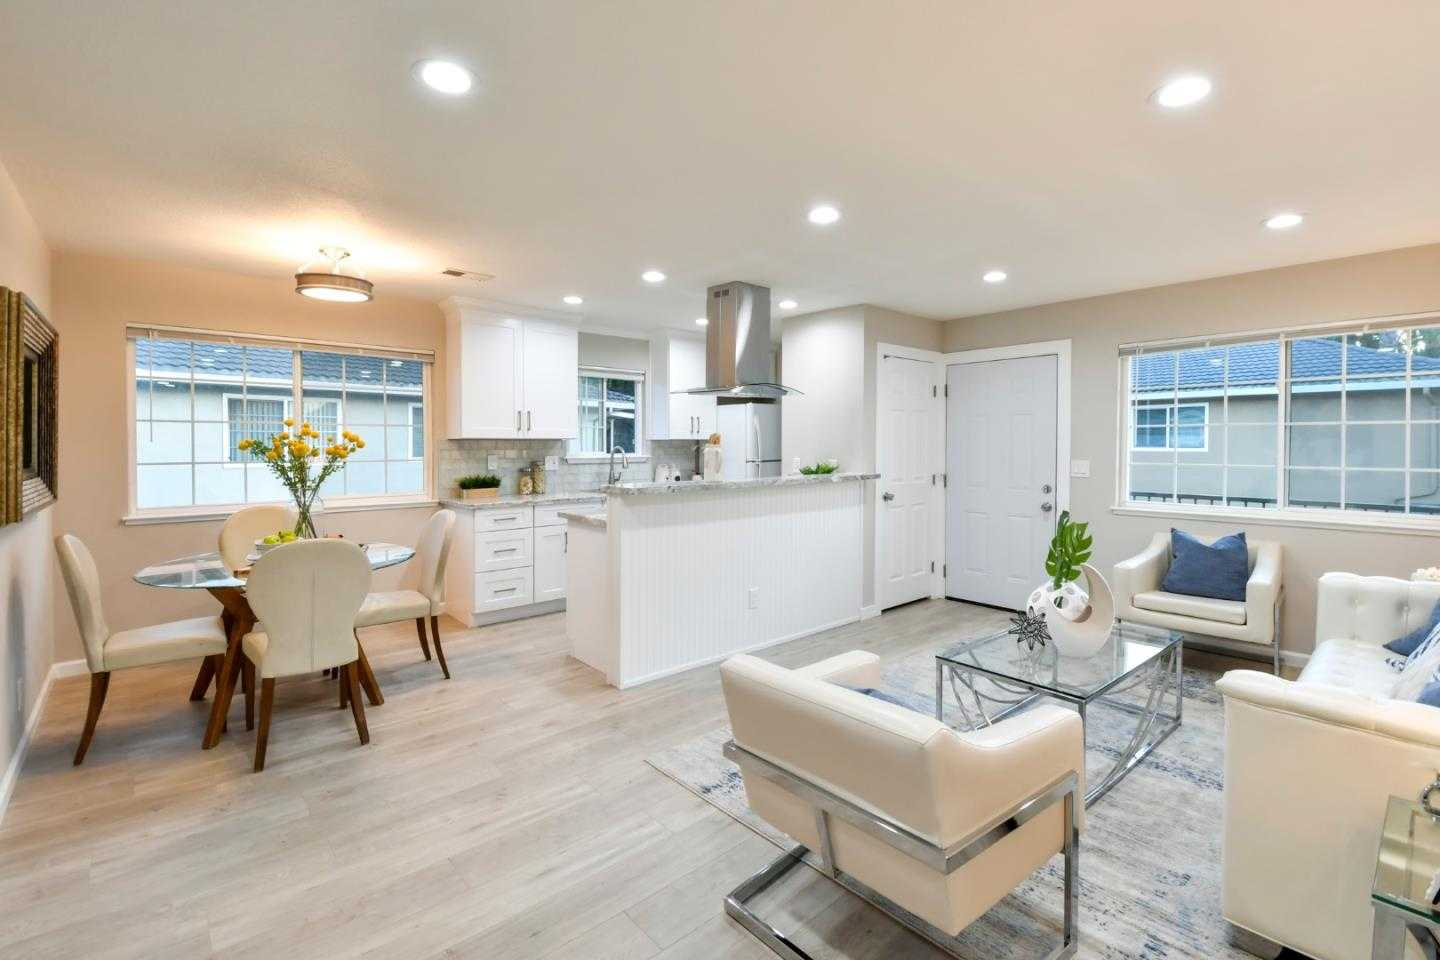 $399,888 - 2Br/1Ba -  for Sale in San Jose